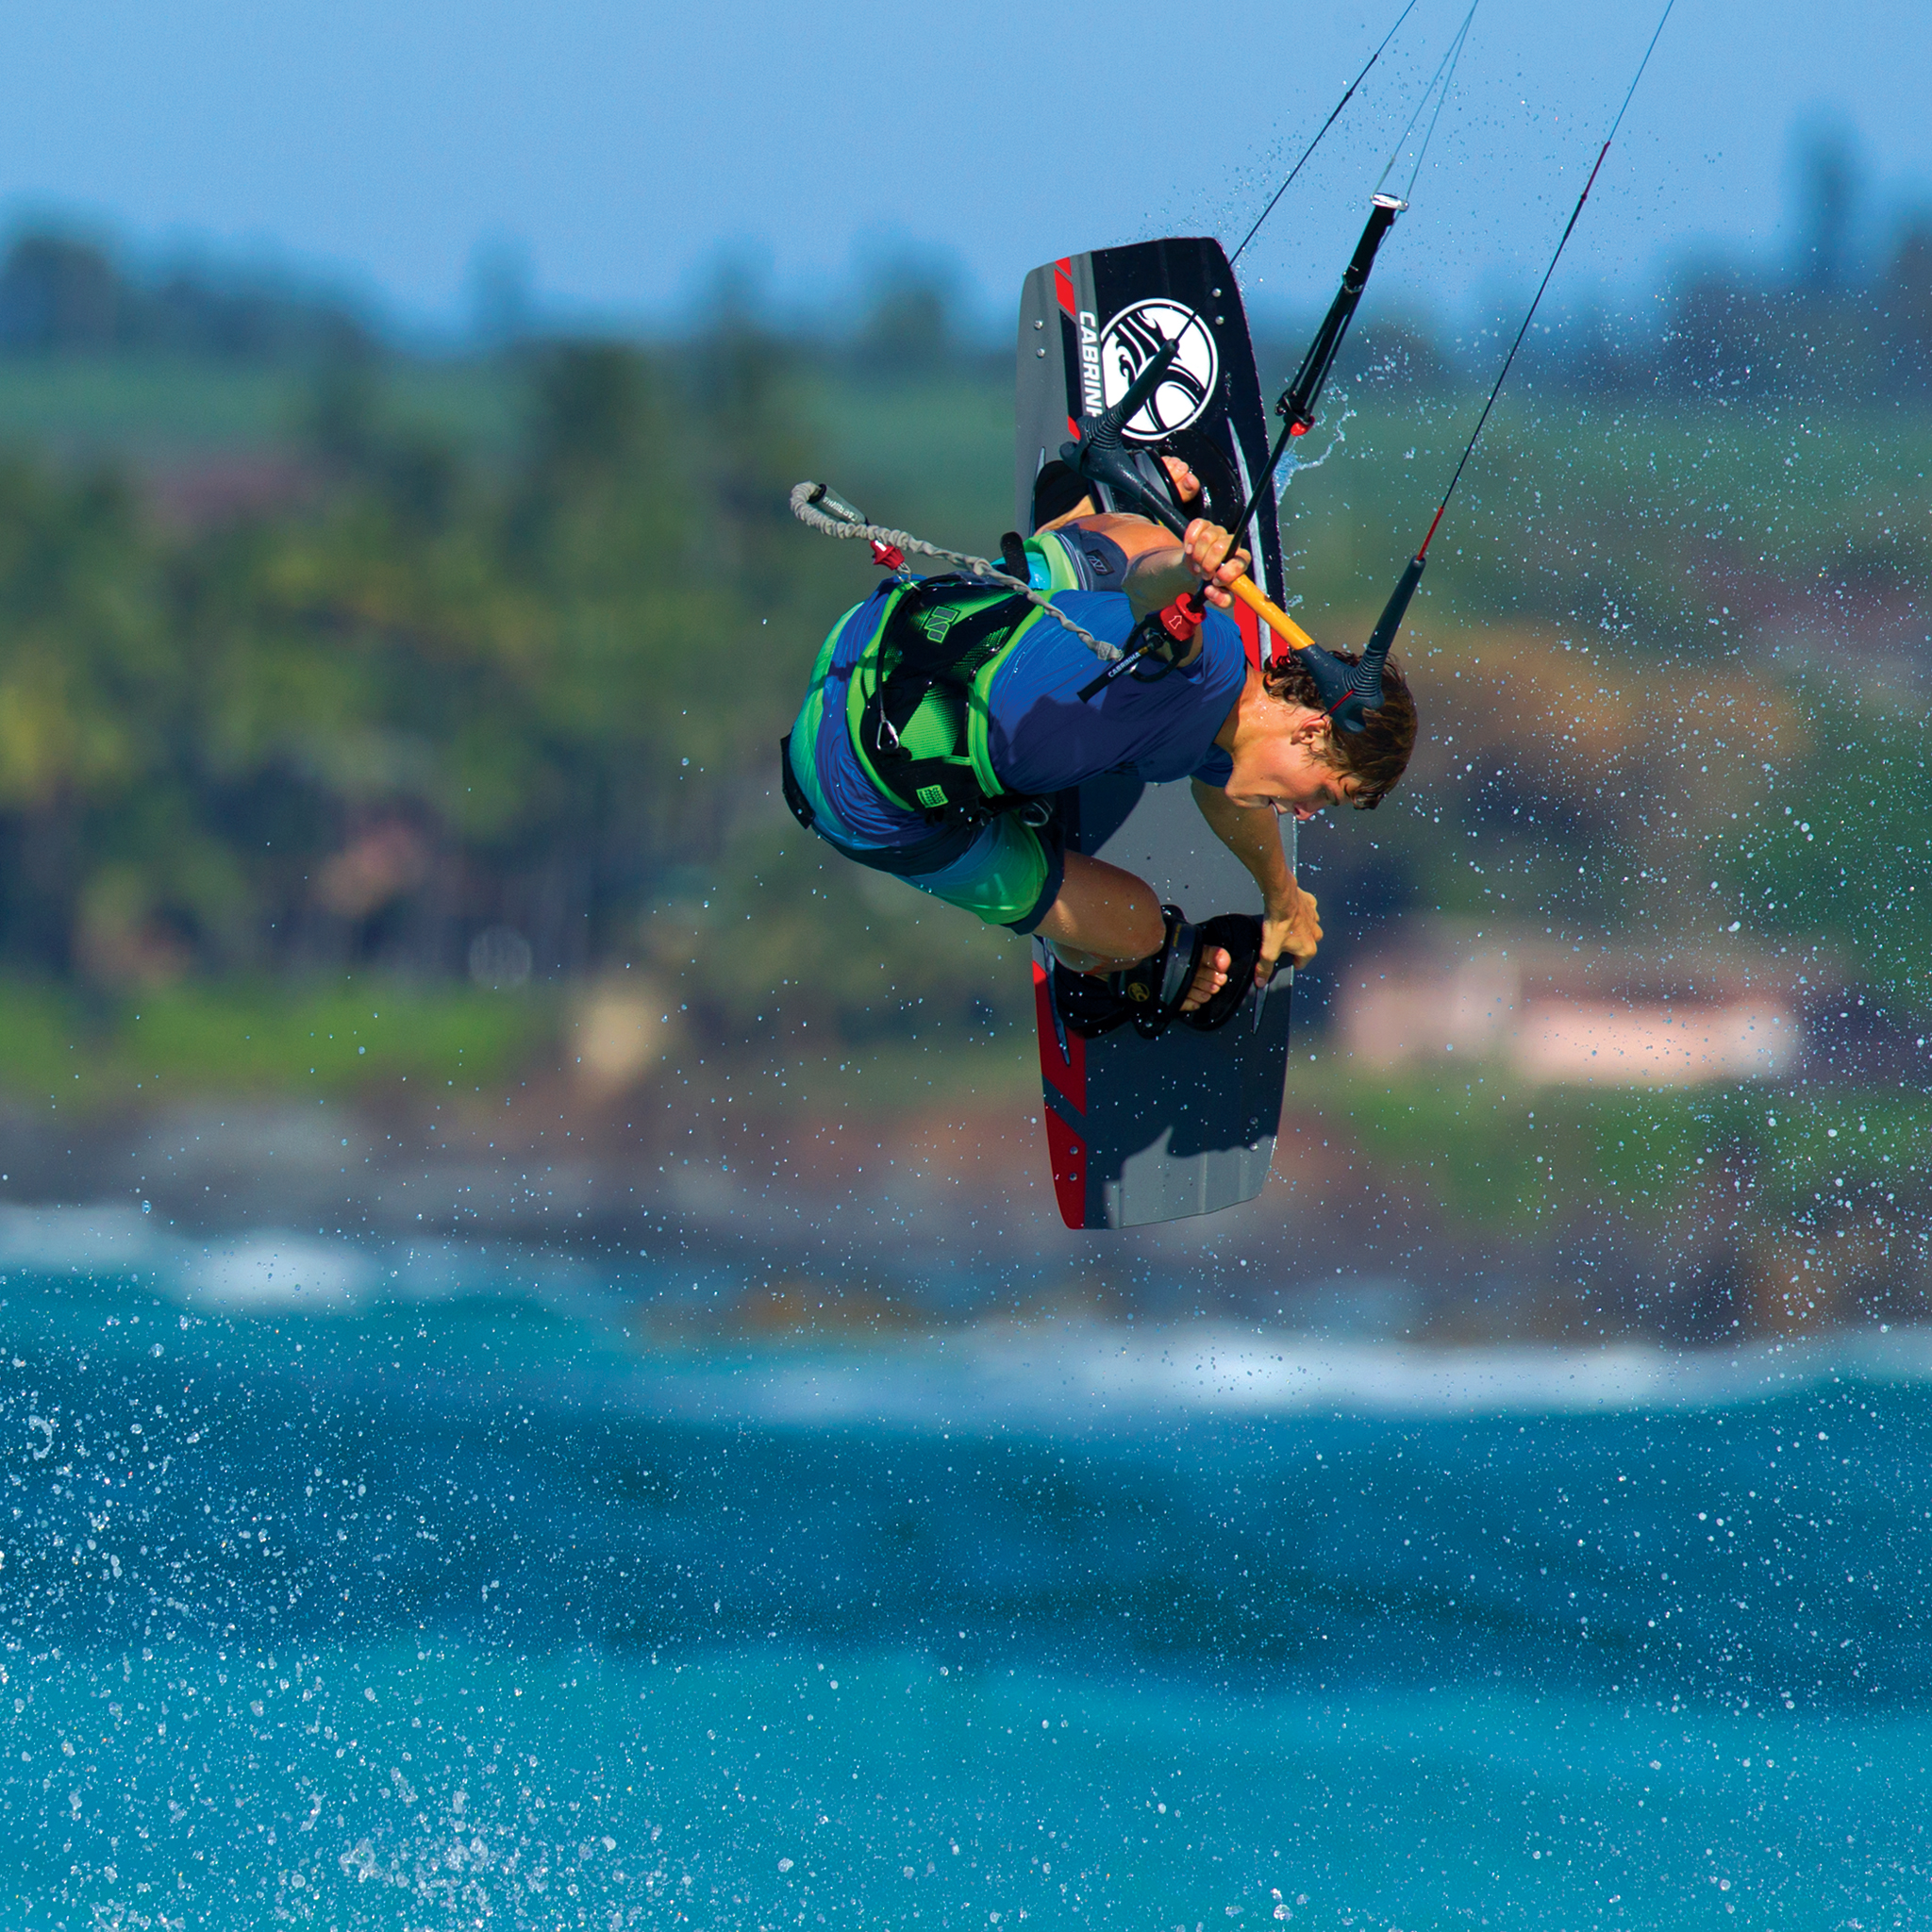 kitesurf wallpaper image - Liam Whaley on the 2015 Cabrinha Ace twintip with a nice board grab. - in resolution: iPad 2 & 3 2048 X 2048